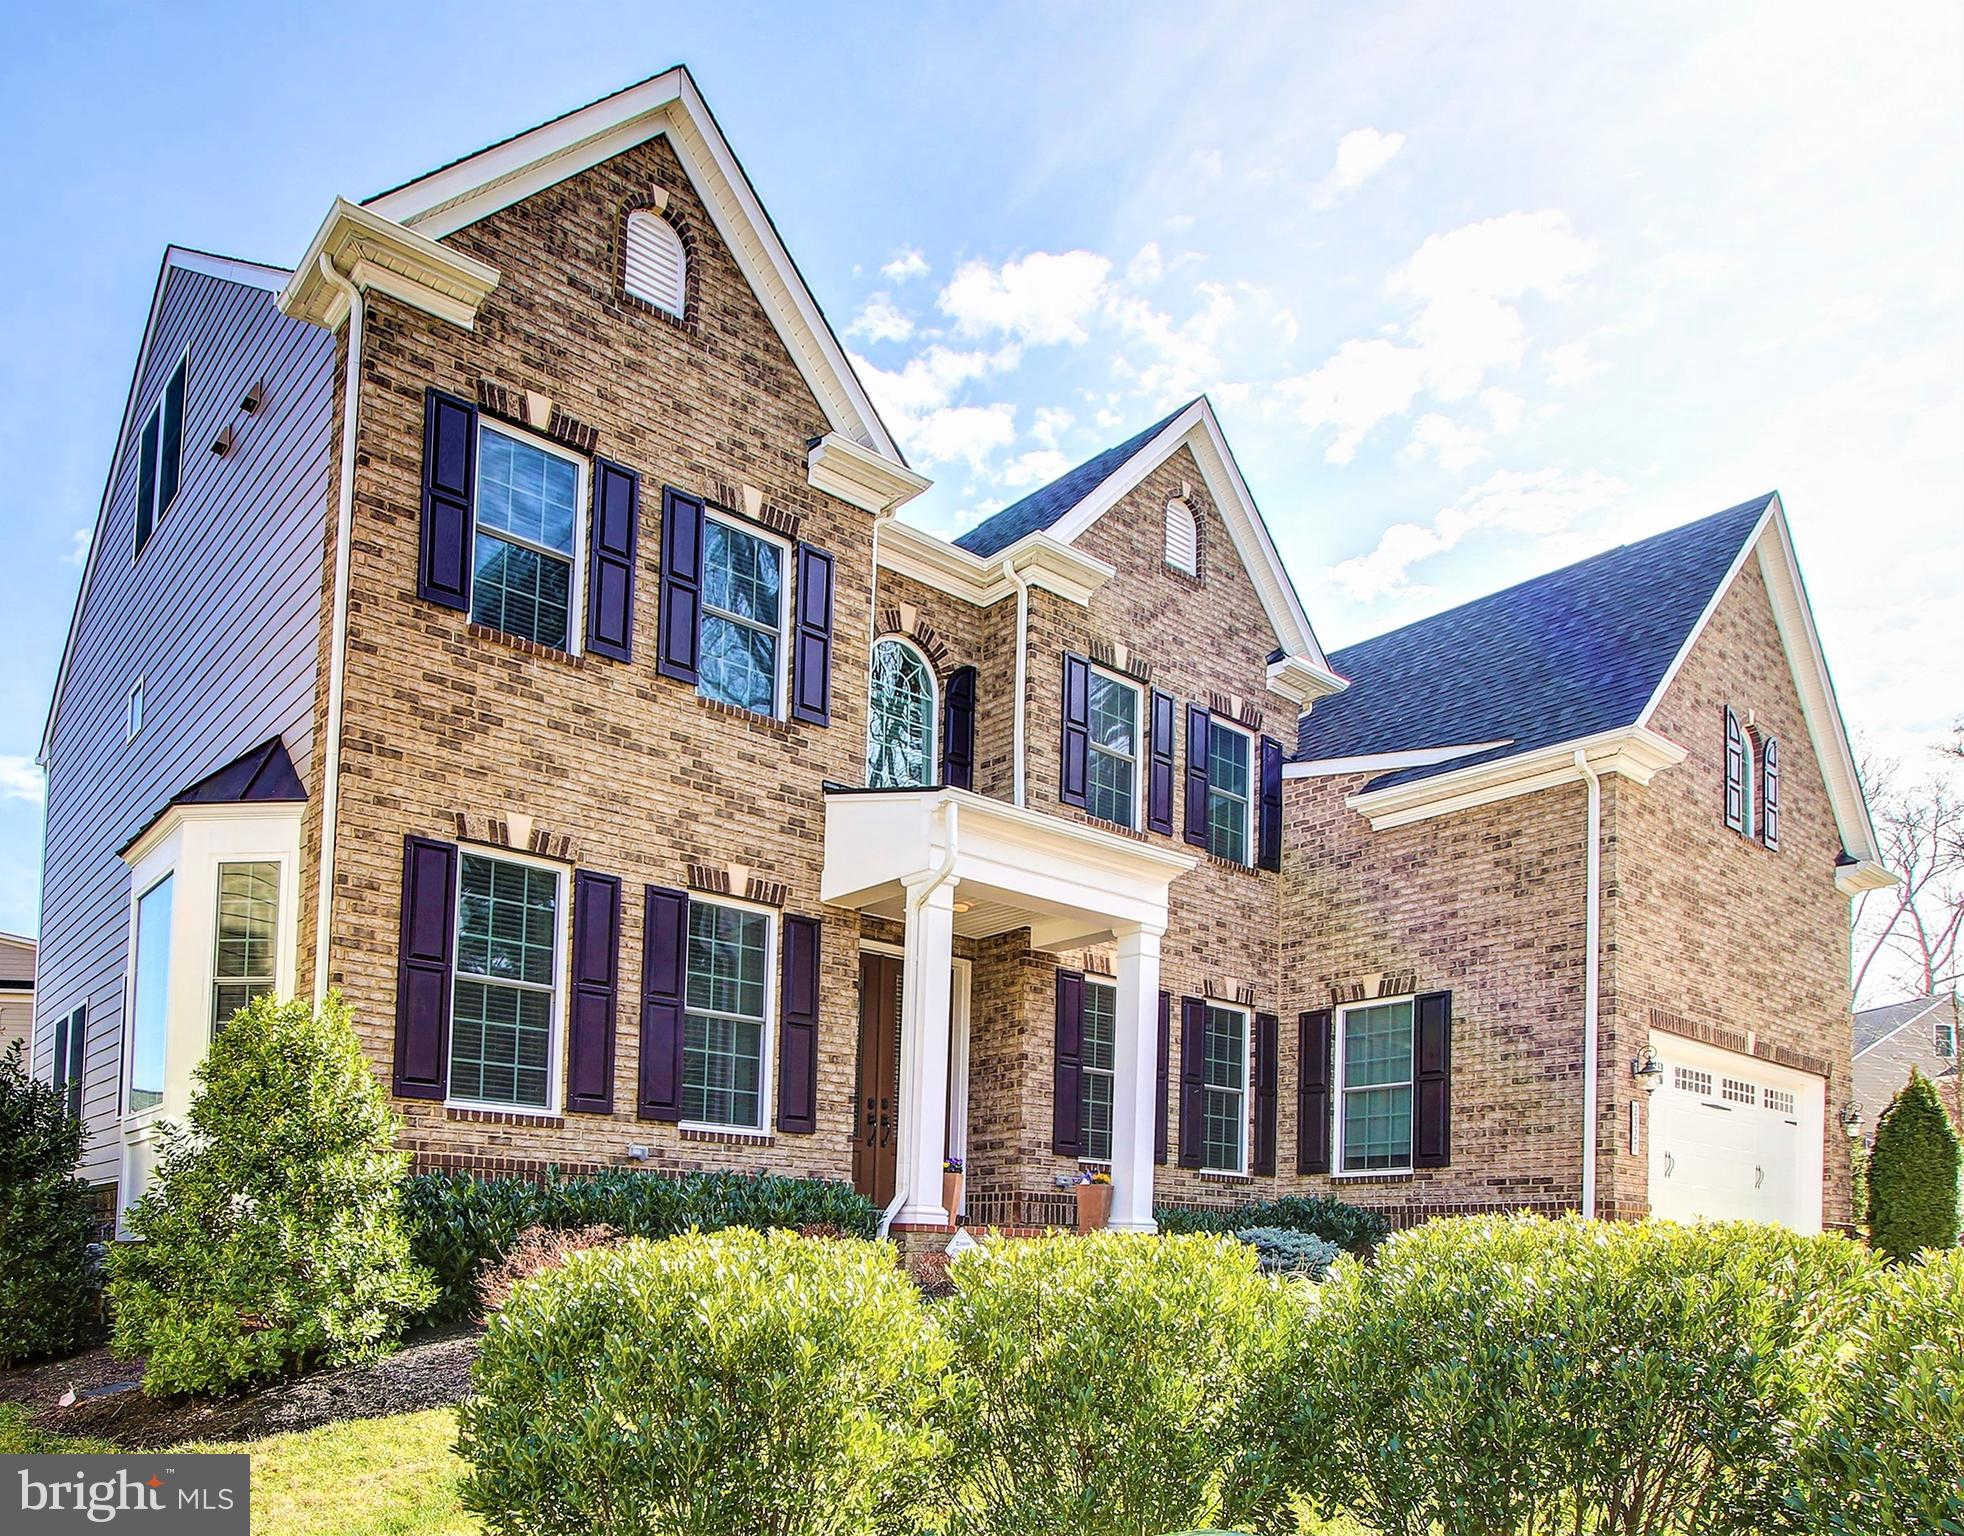 2327 Dale Drive, Falls Church, VA 22043 has a Virtual Open House on  Monday, May 25, 2020 8:00 AM to 2:00 PM